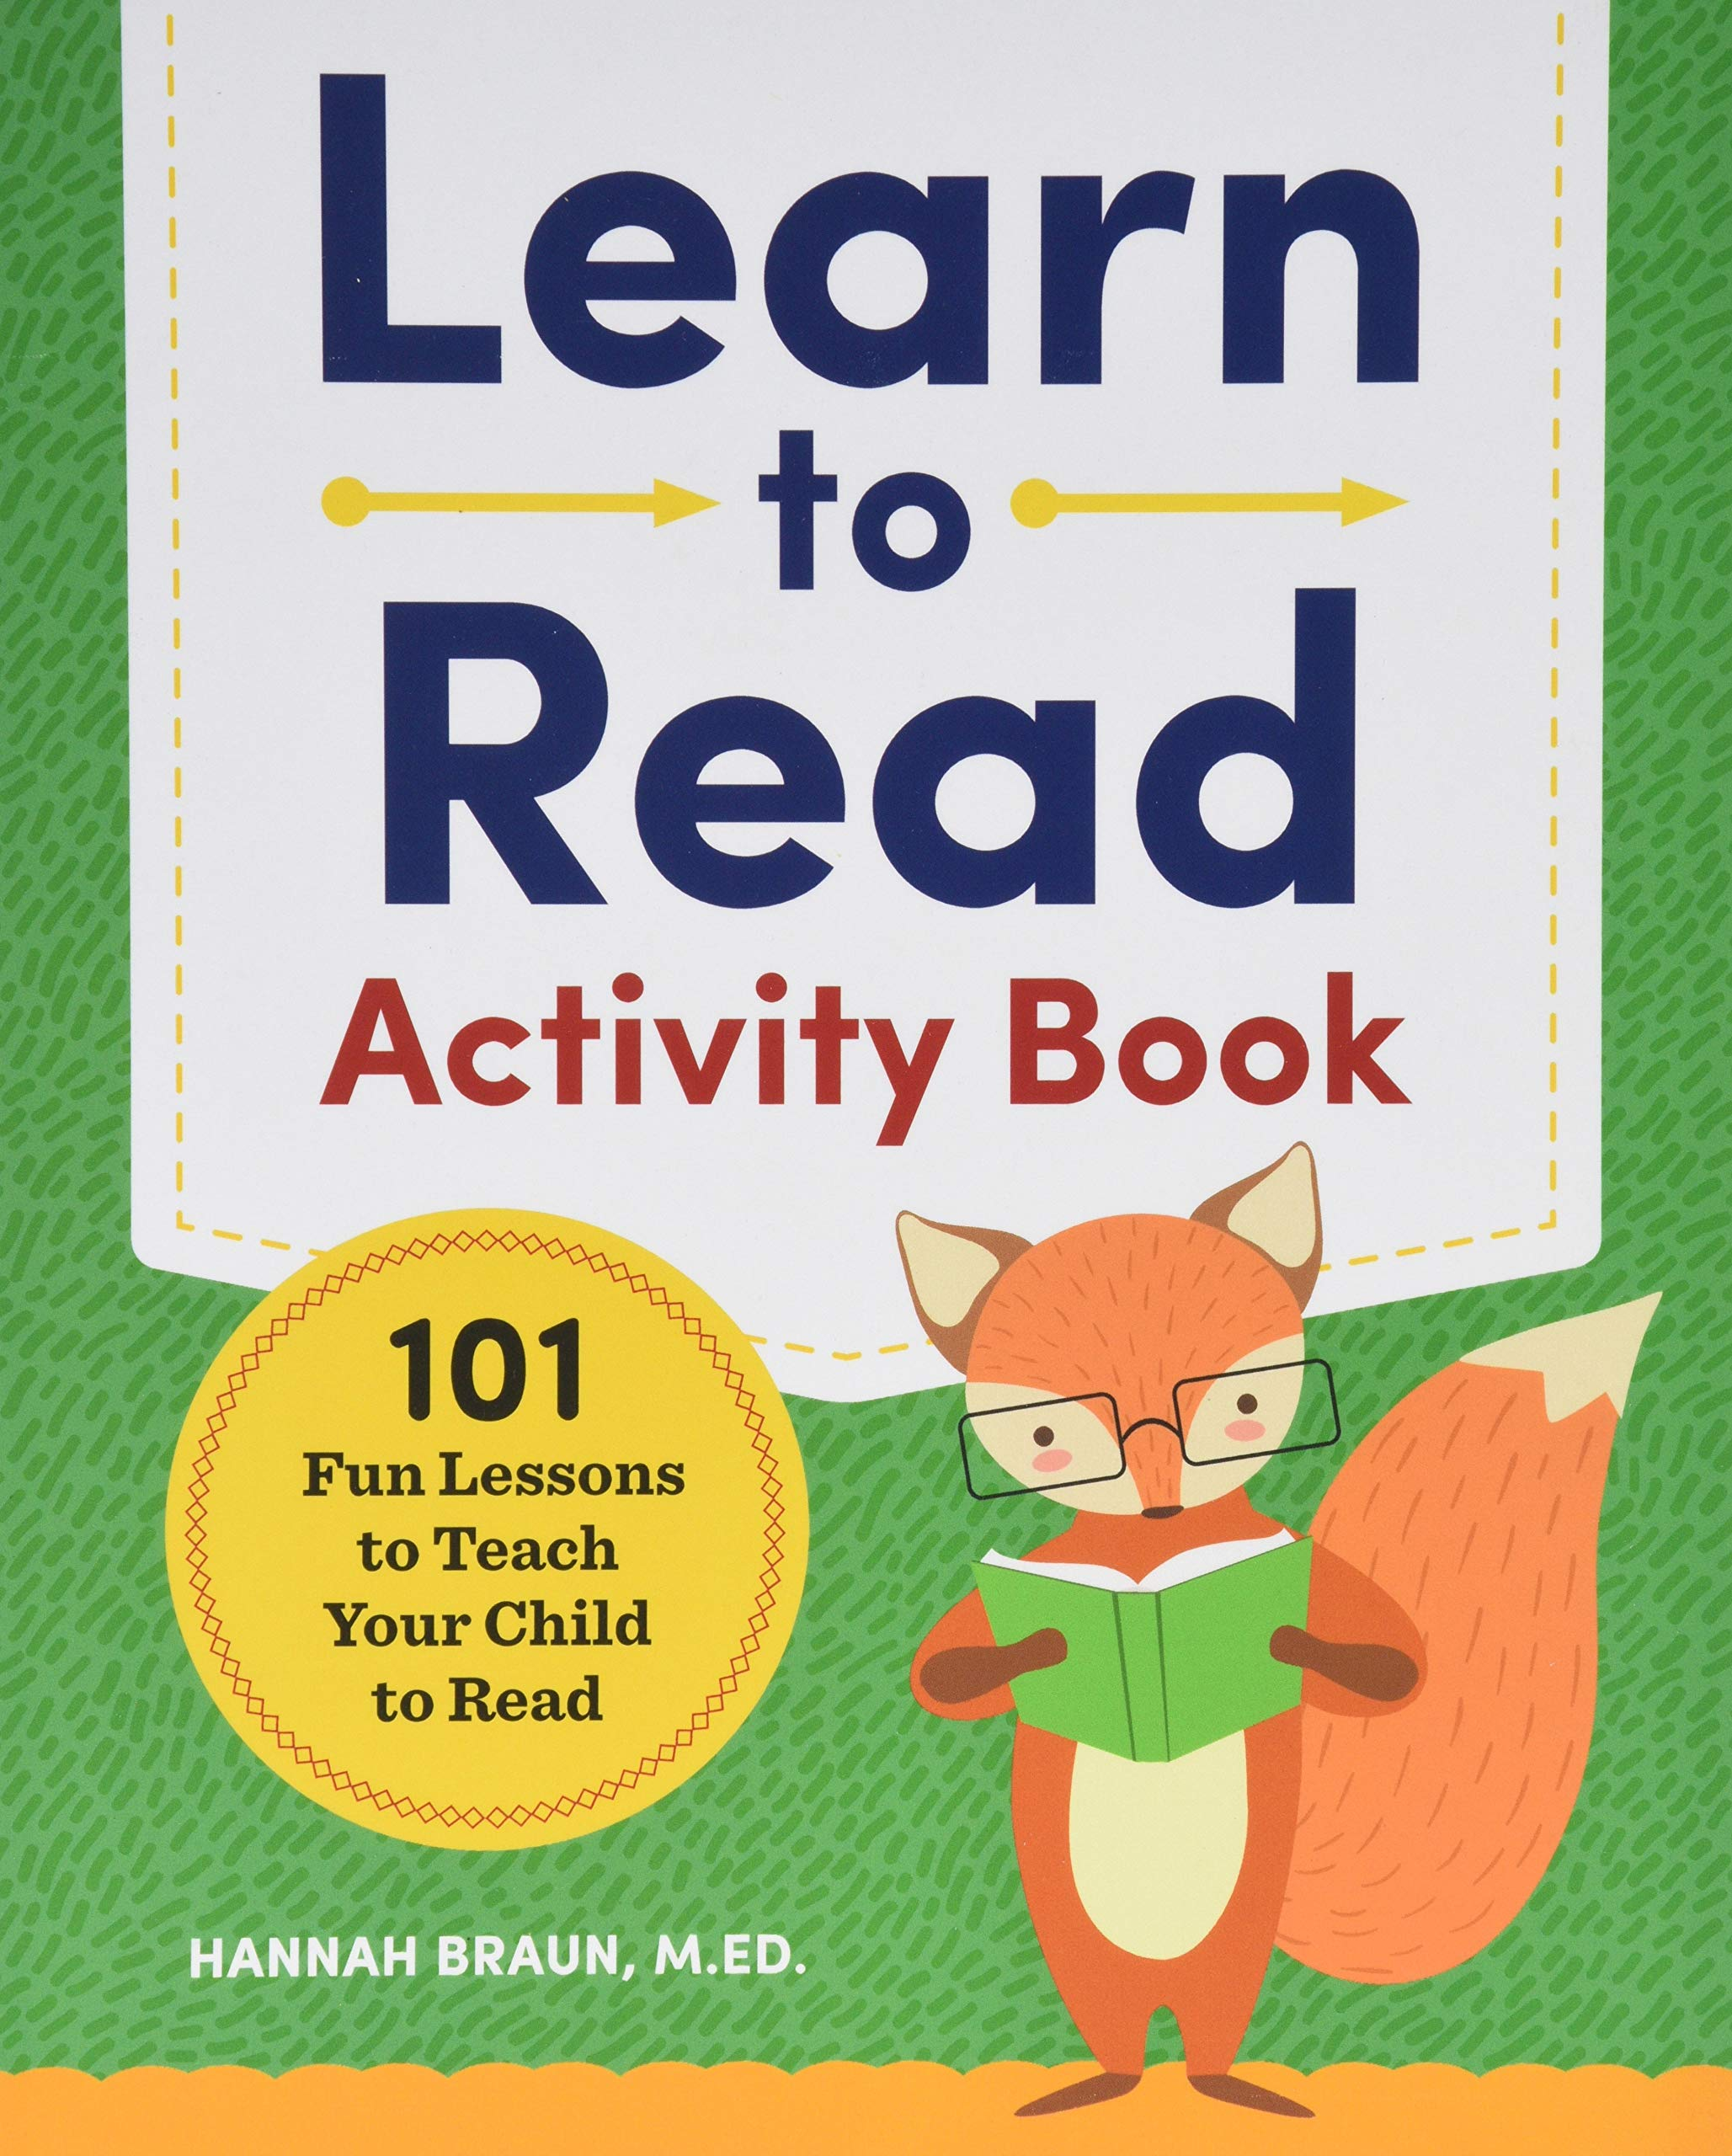 Learn Read Activity Book Lessons product image